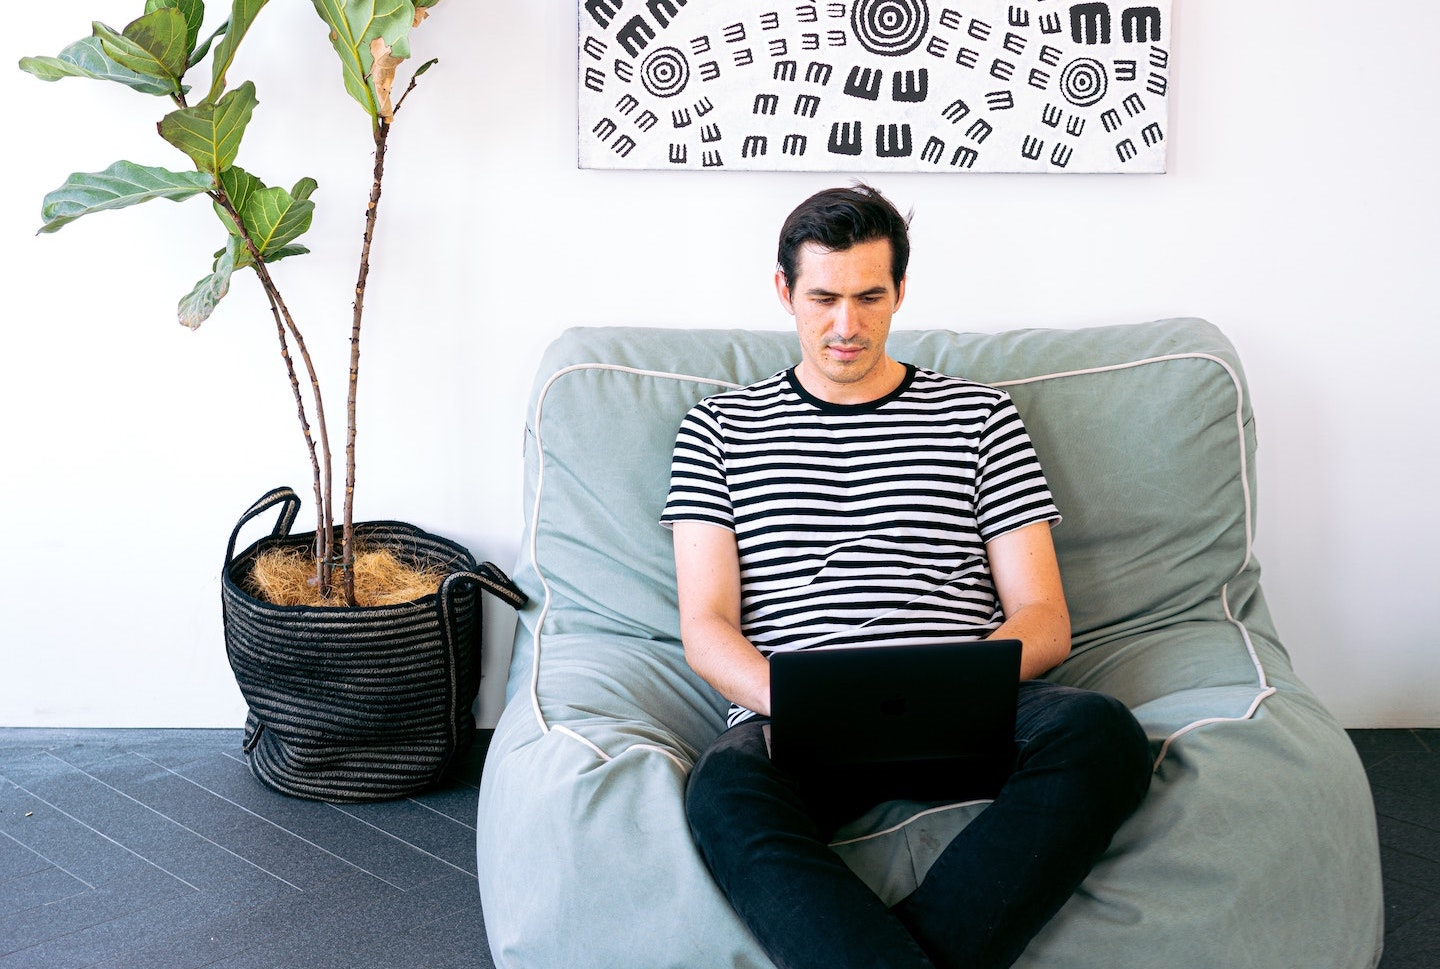 Man sitting on a plush bean bag chair next to an indoor plant while working on his laptop